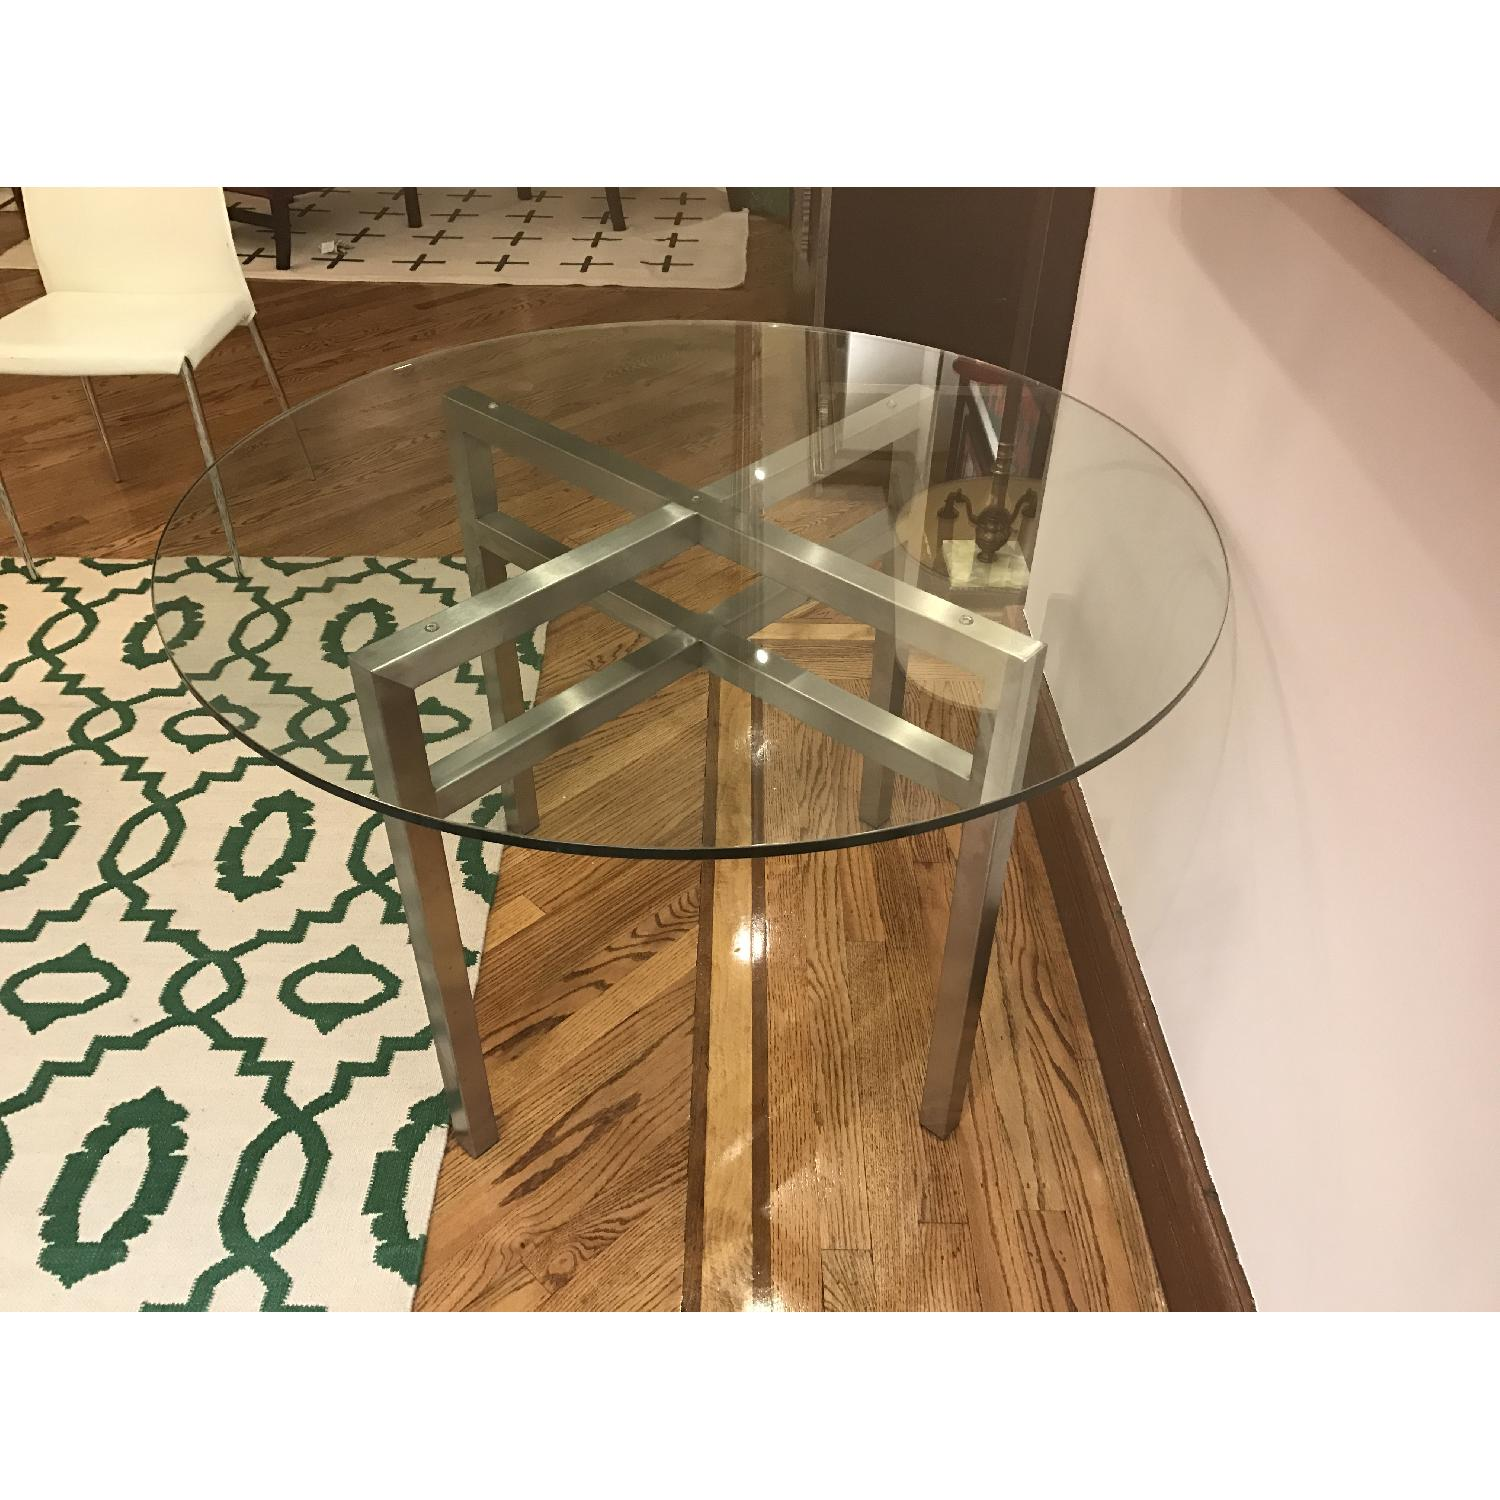 Room & Board Benson Dining Table in Stainless Steel & Glass - image-4